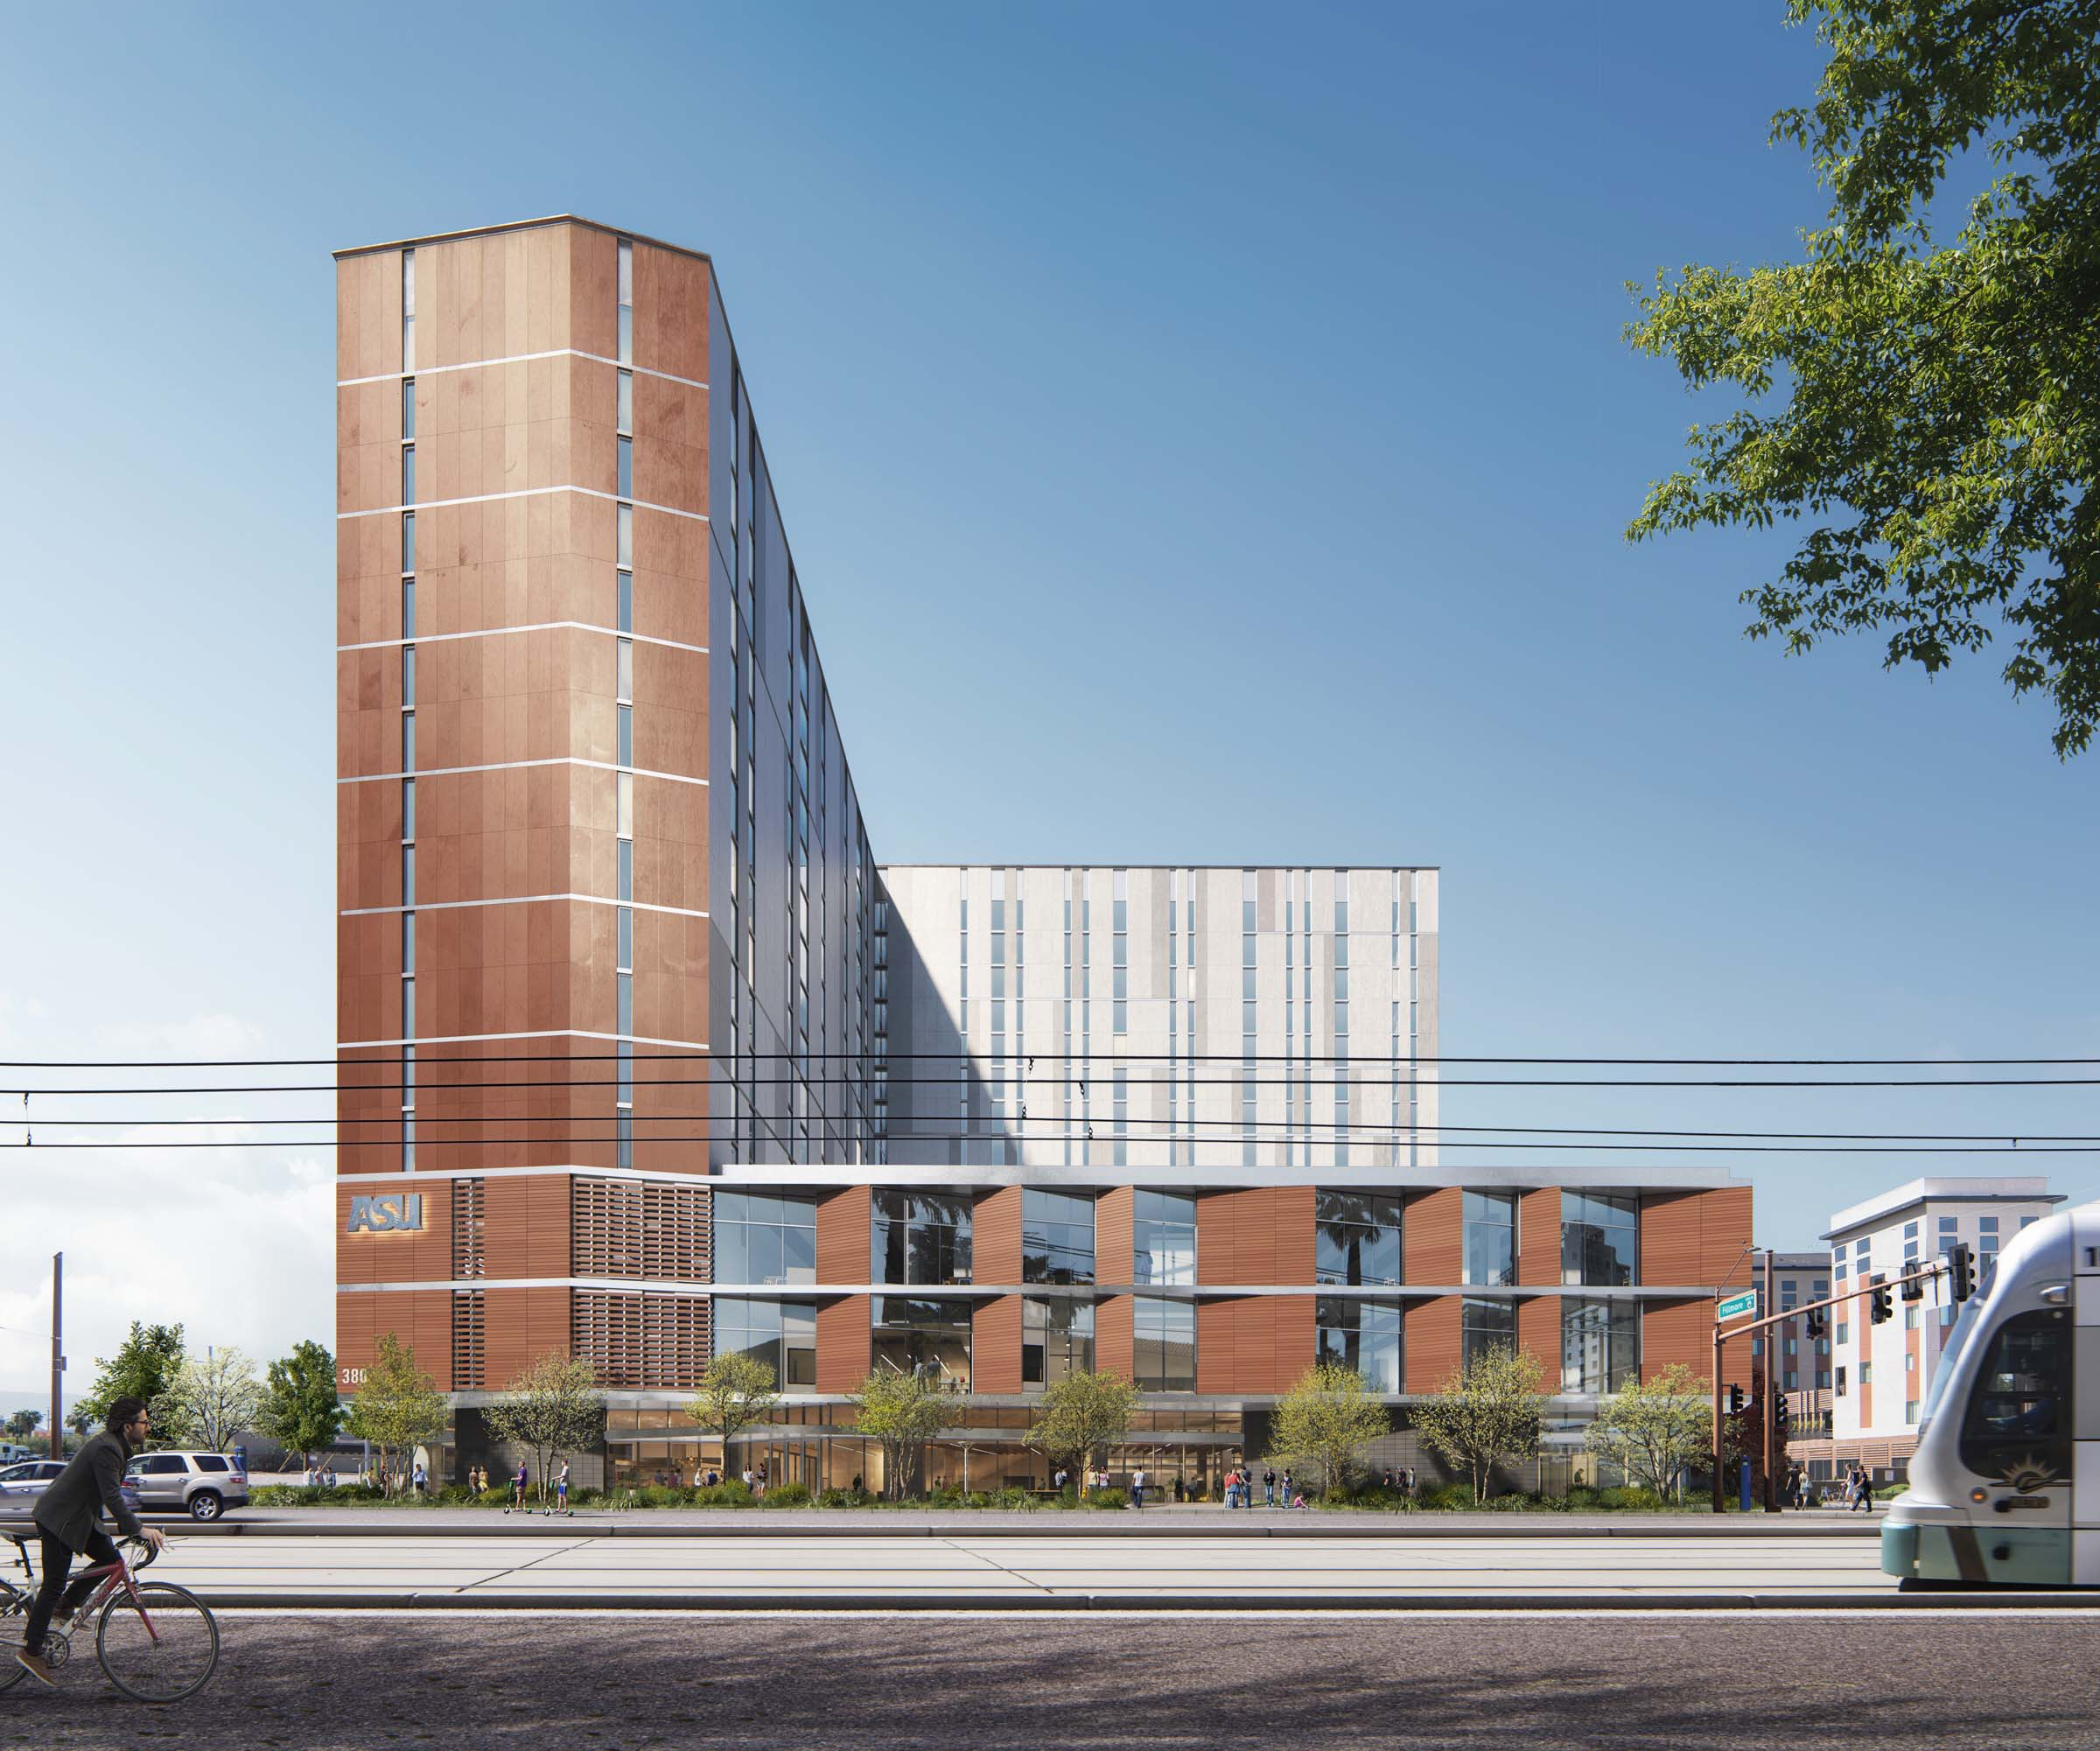 rendering of the L shaped building exterior highlighting the Arizona sun's intense glare